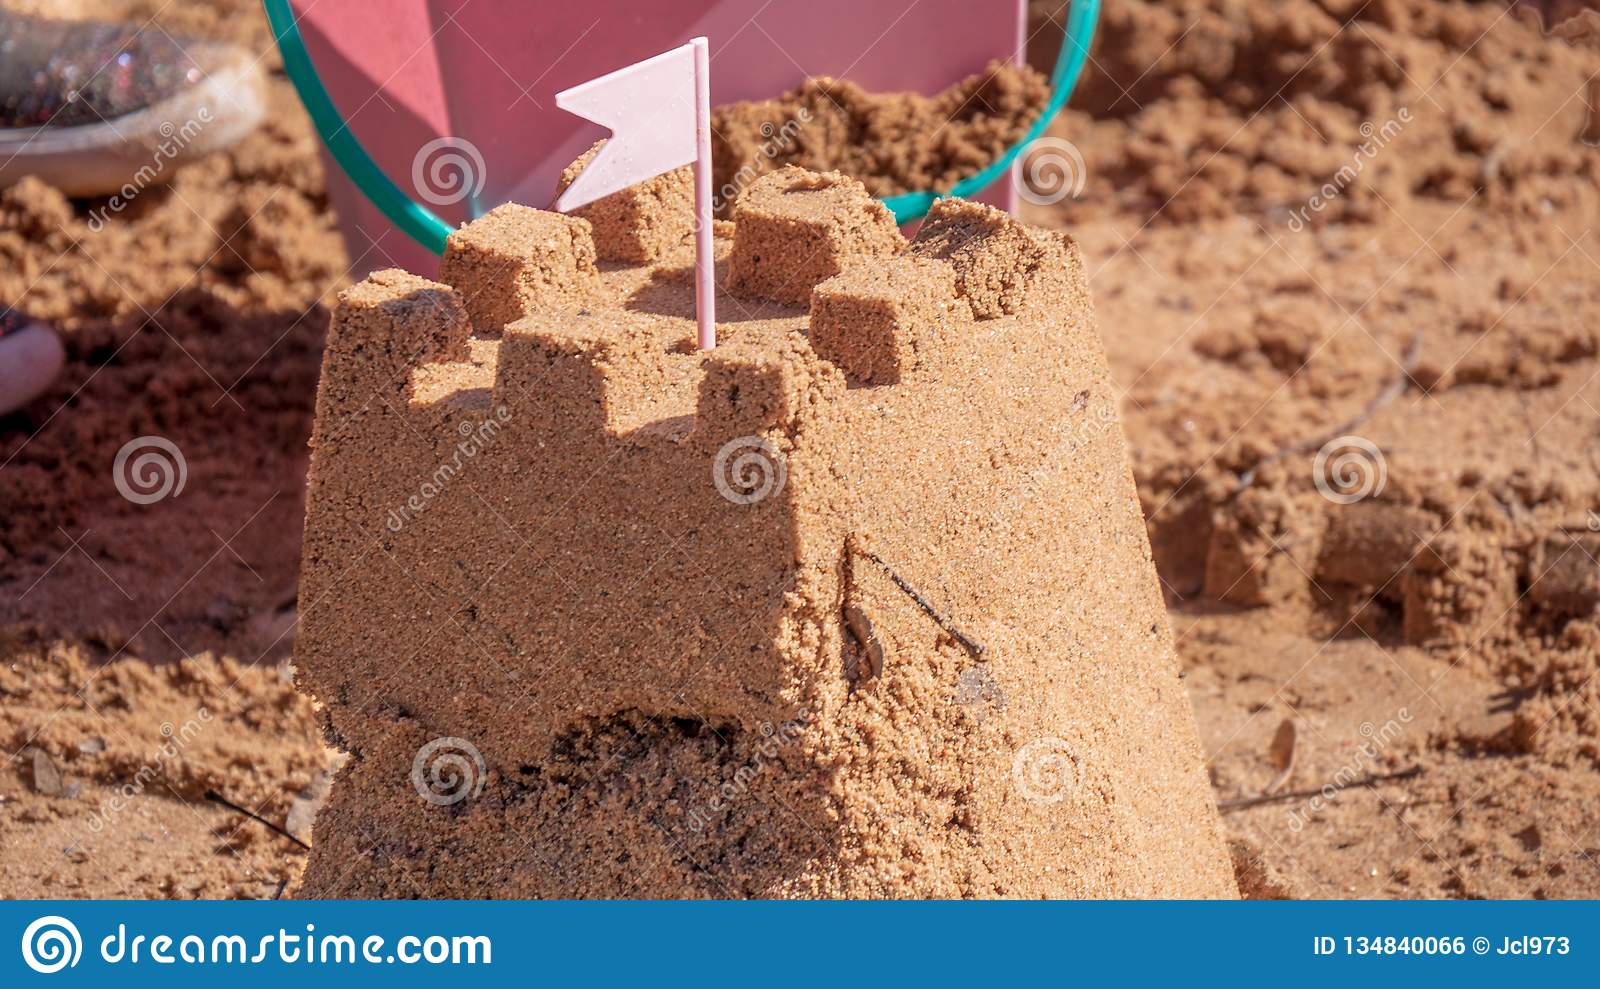 Sand castle surrounded by beach toys